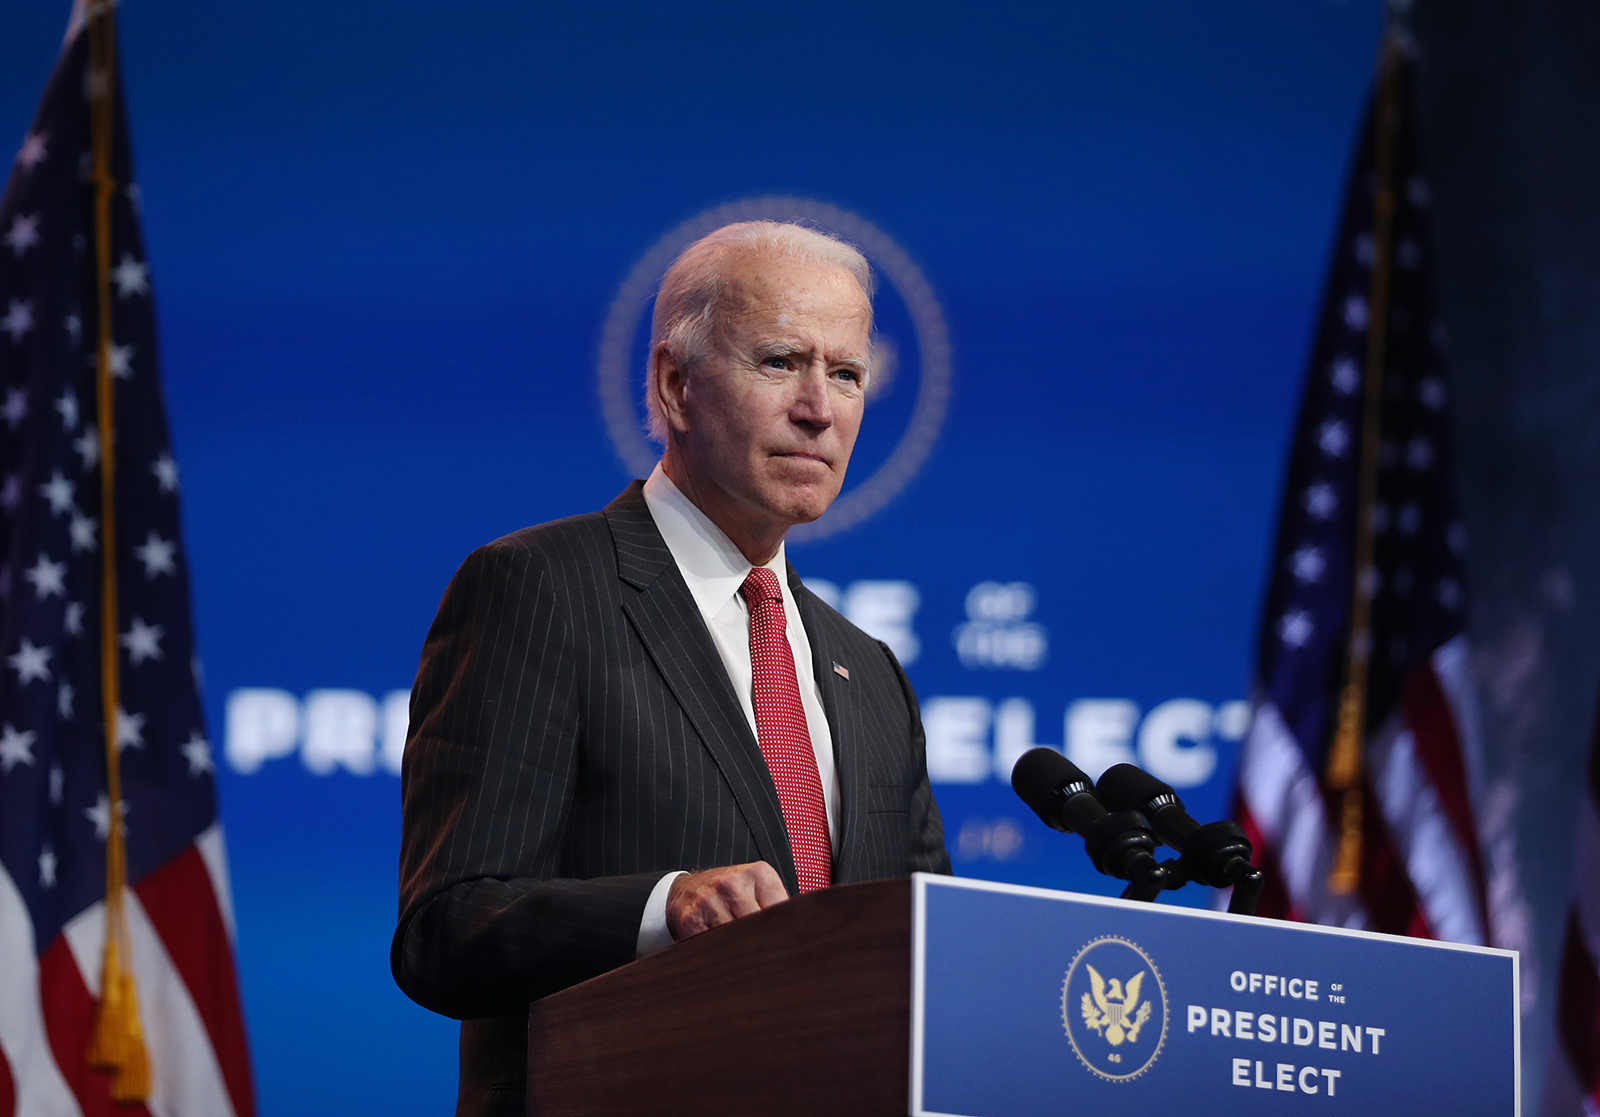 President-elect Joe Biden speaks as he addresses the media after a virtual meeting with the National Governors Association's executive committee at the Queen Theater on November 19, in Wilmington, Delaware.